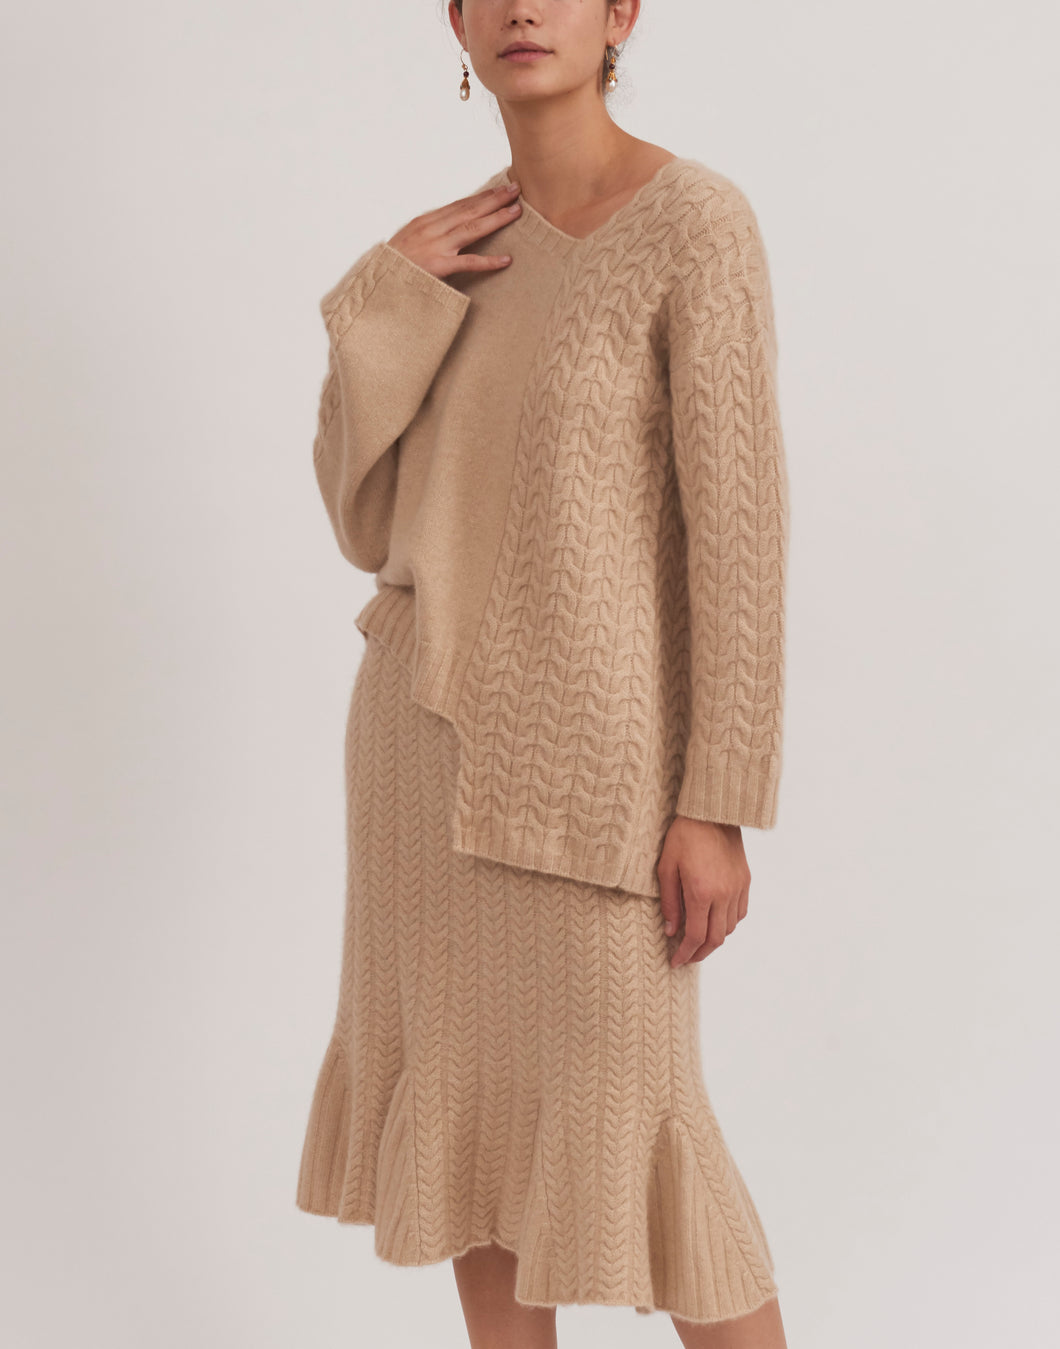 Women's Asymmetric Cashmere Sweater